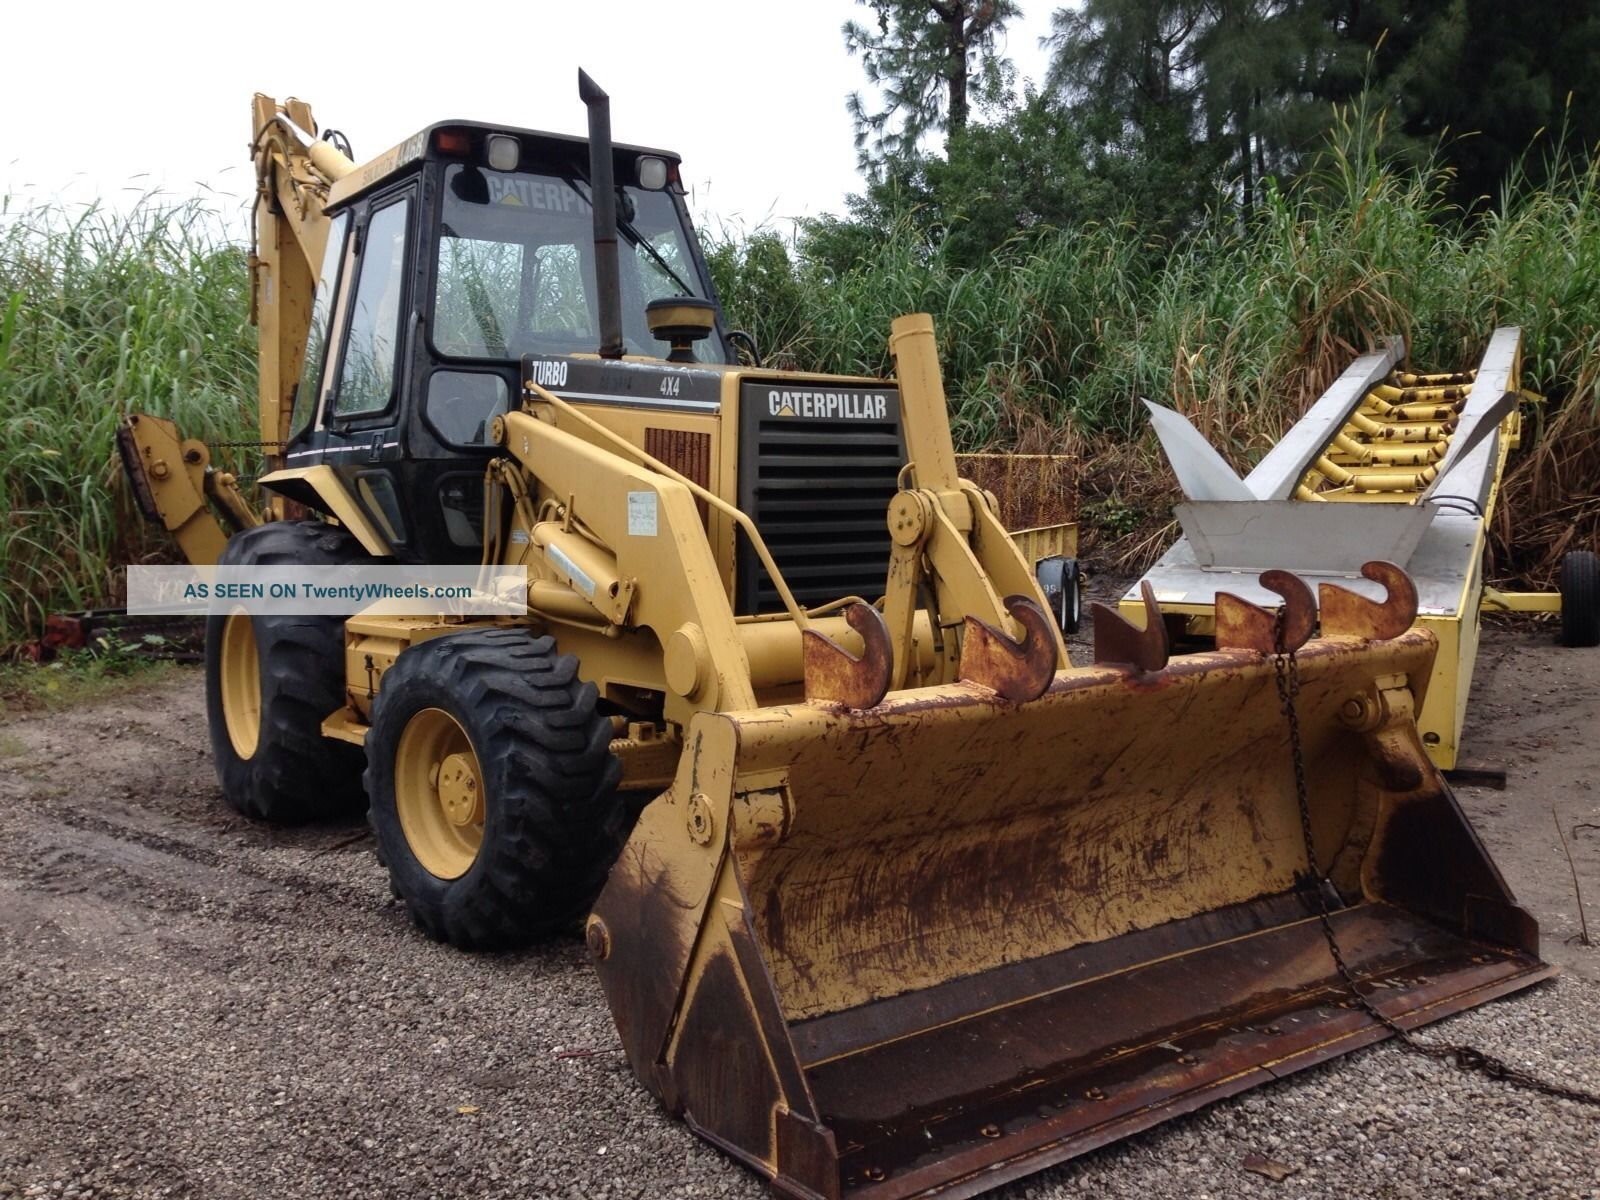 2003 Caterpillar 446b 4wd Inclosed Cab Backhoe Loaders photo